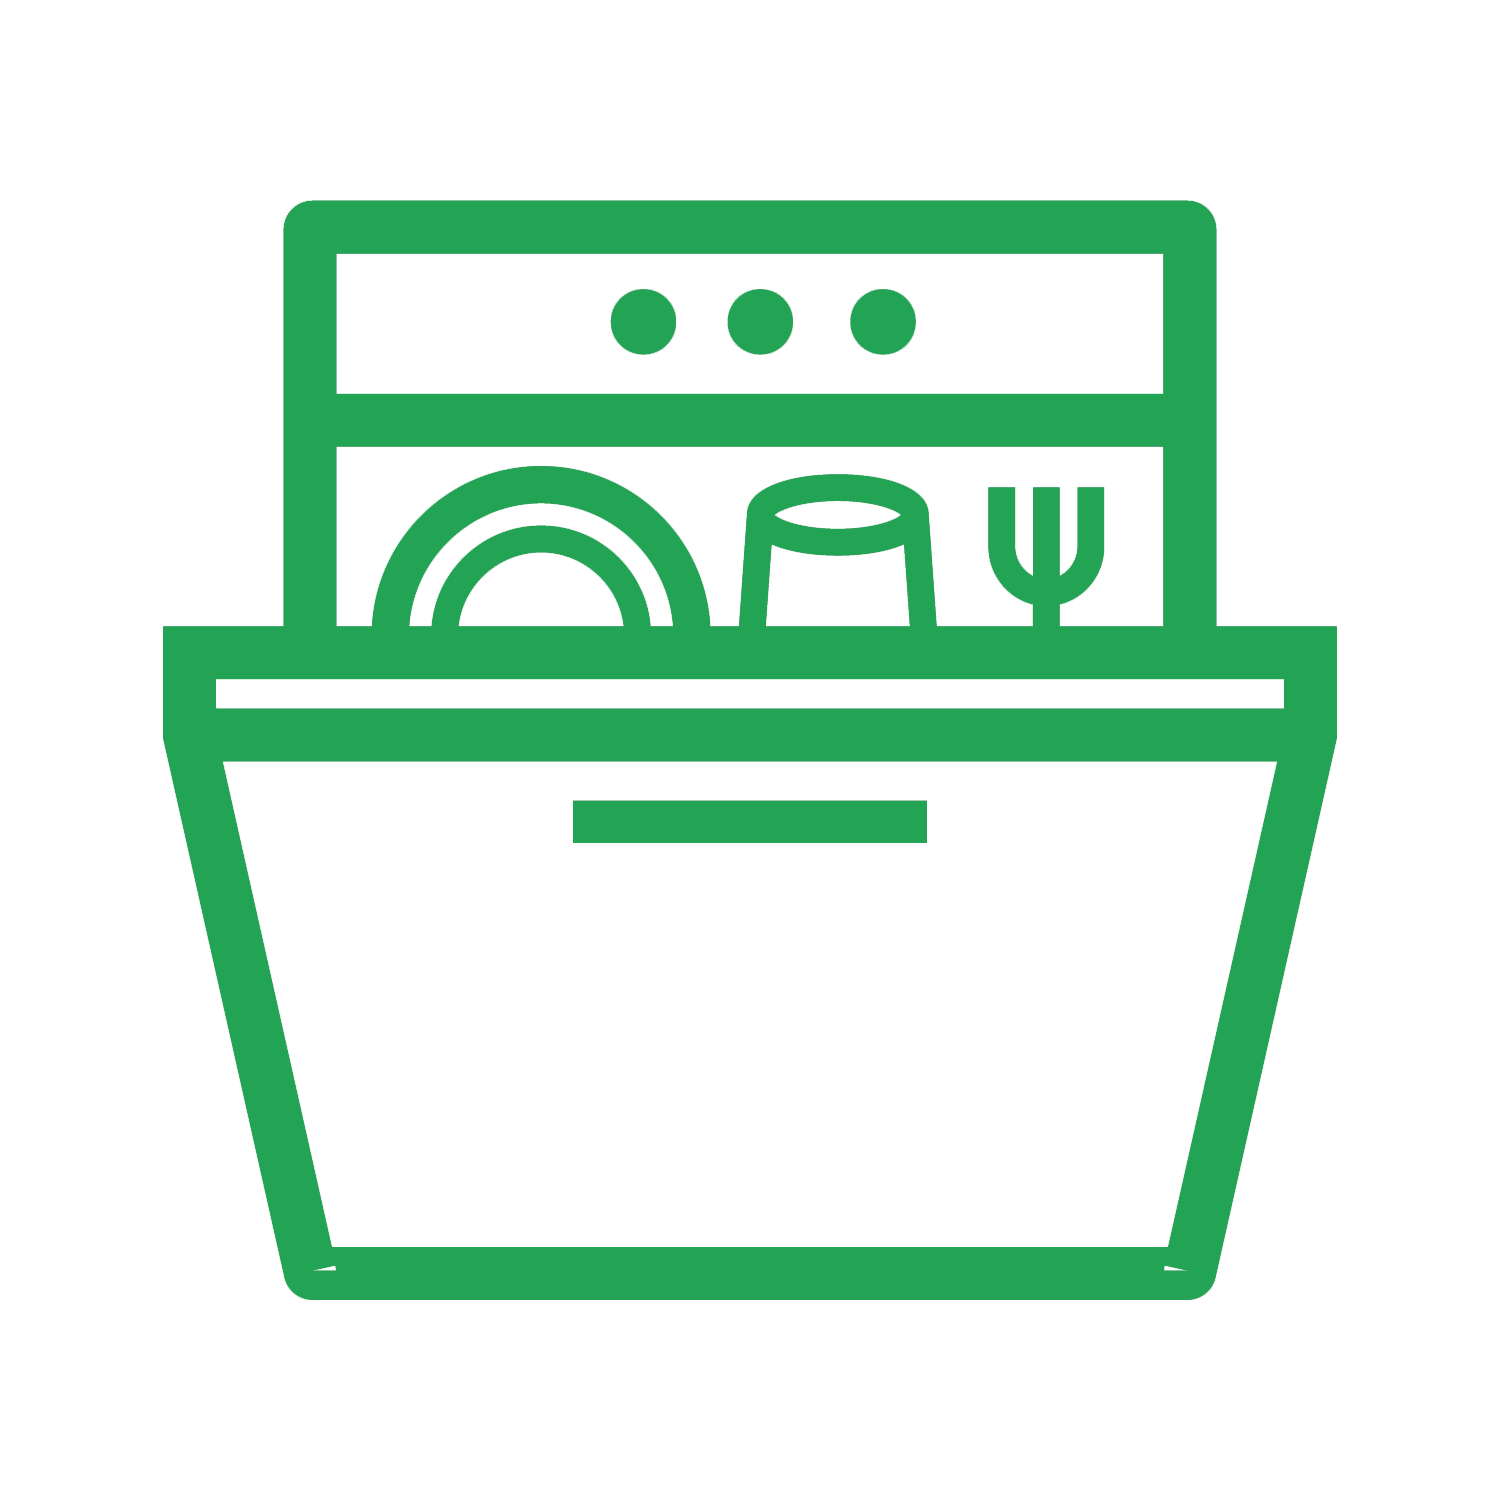 dishwasher-symbol-green